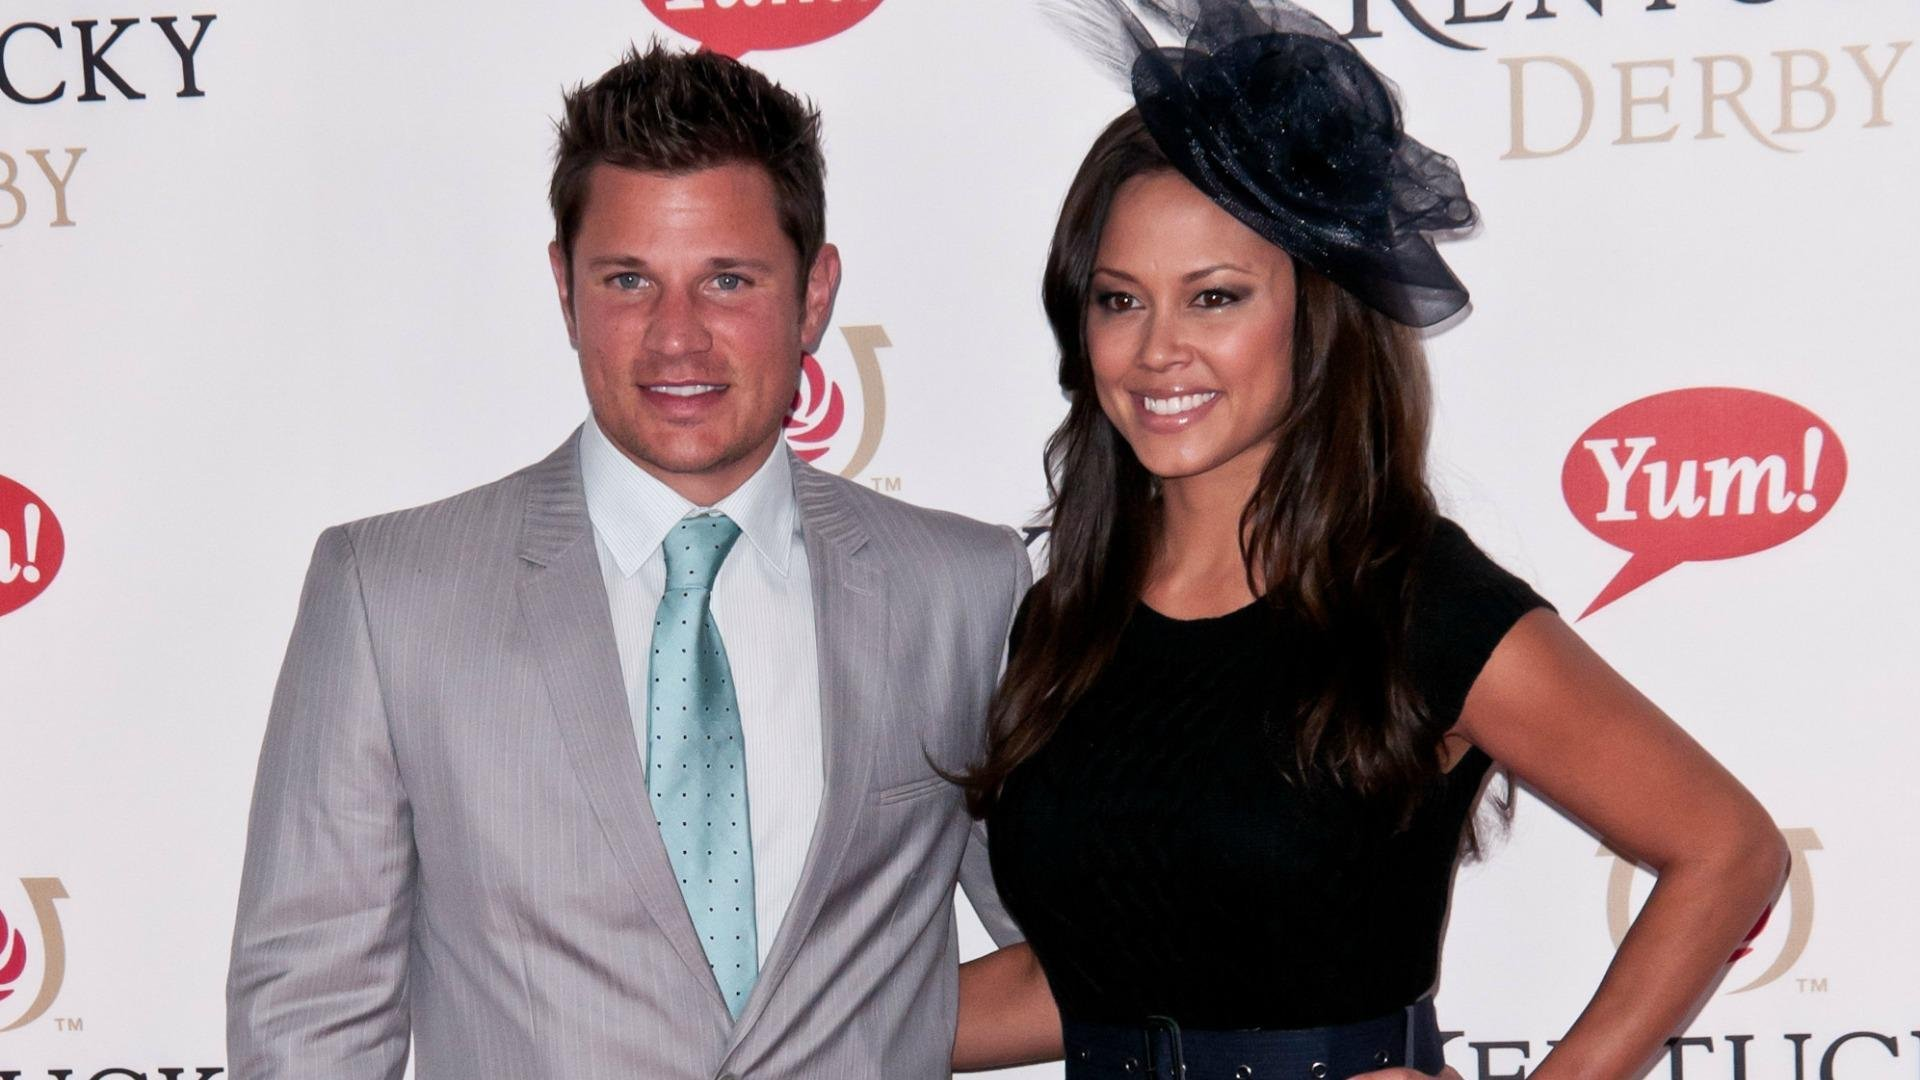 Vanessa and Nick Lachey head for round two of parenthood